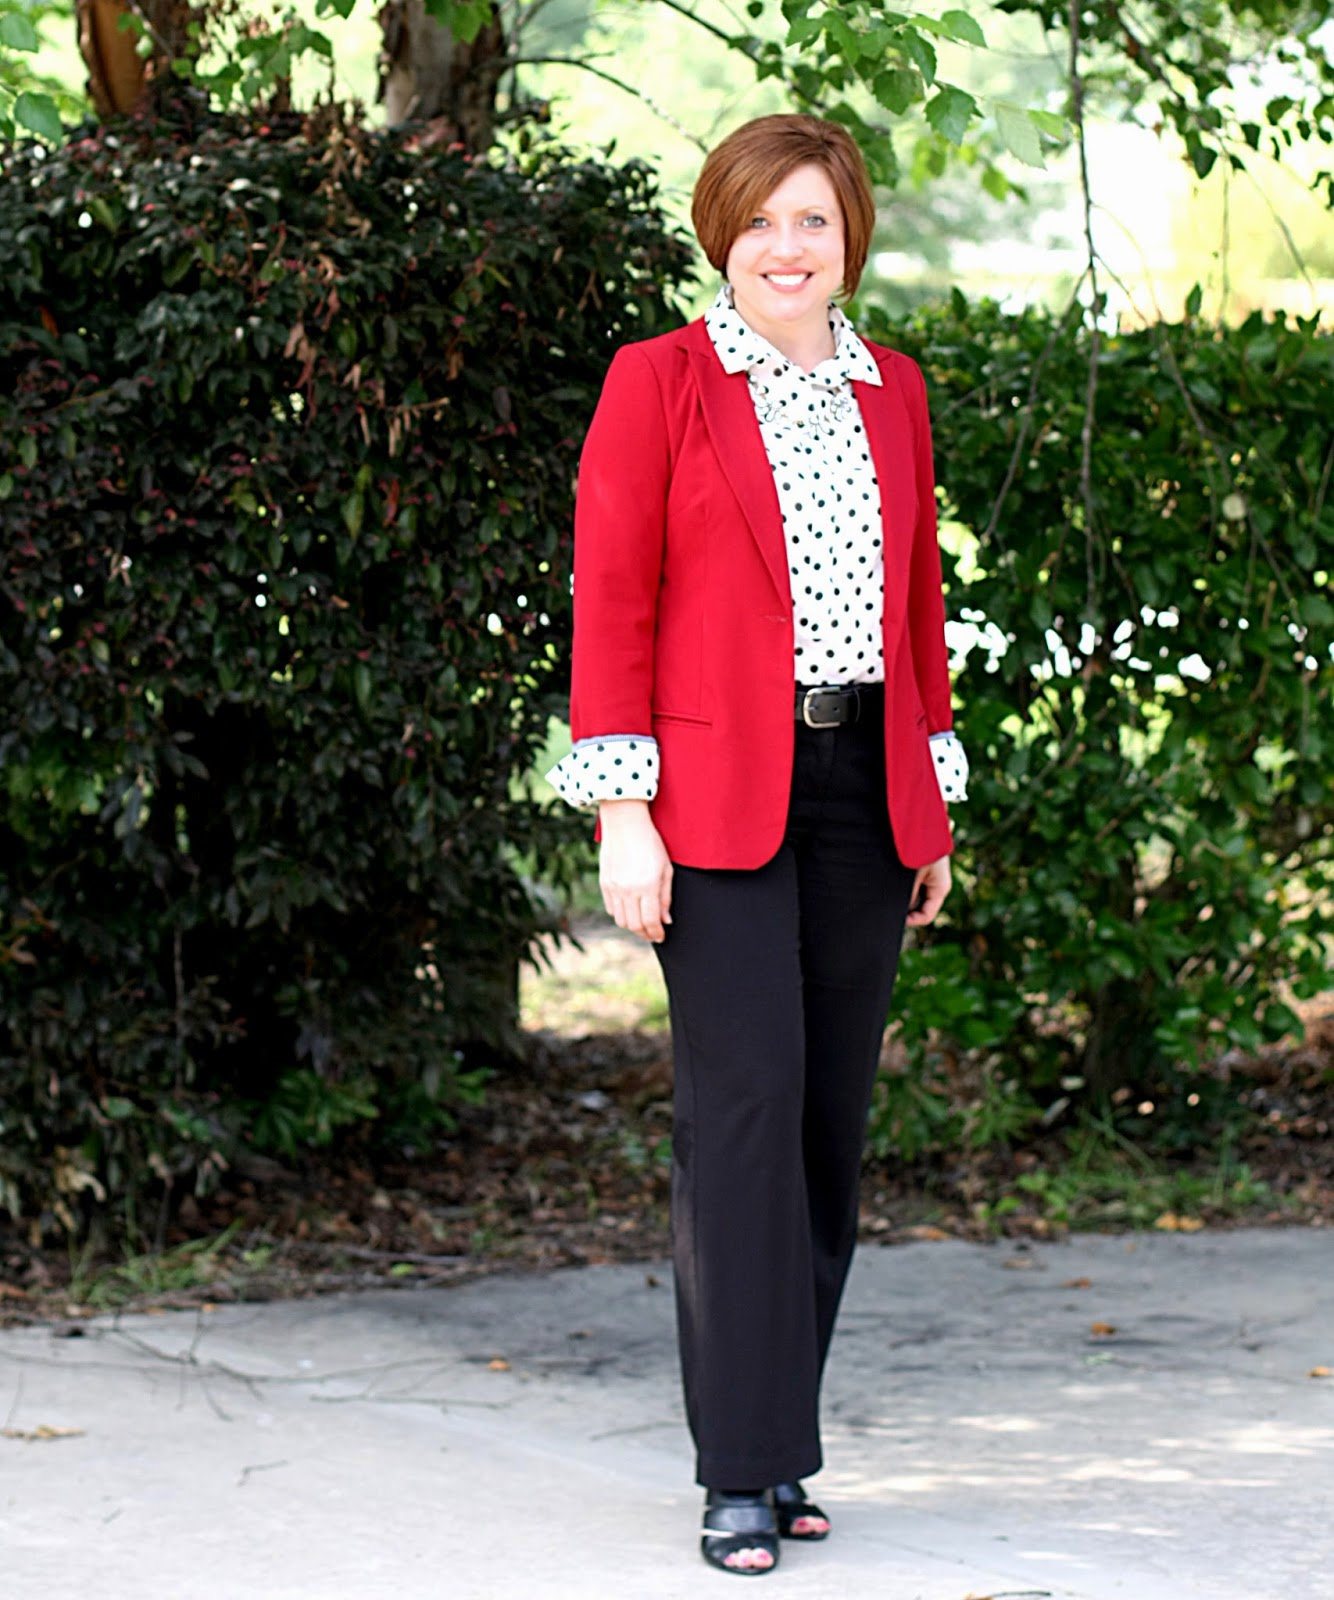 Red with polka dots- two ways